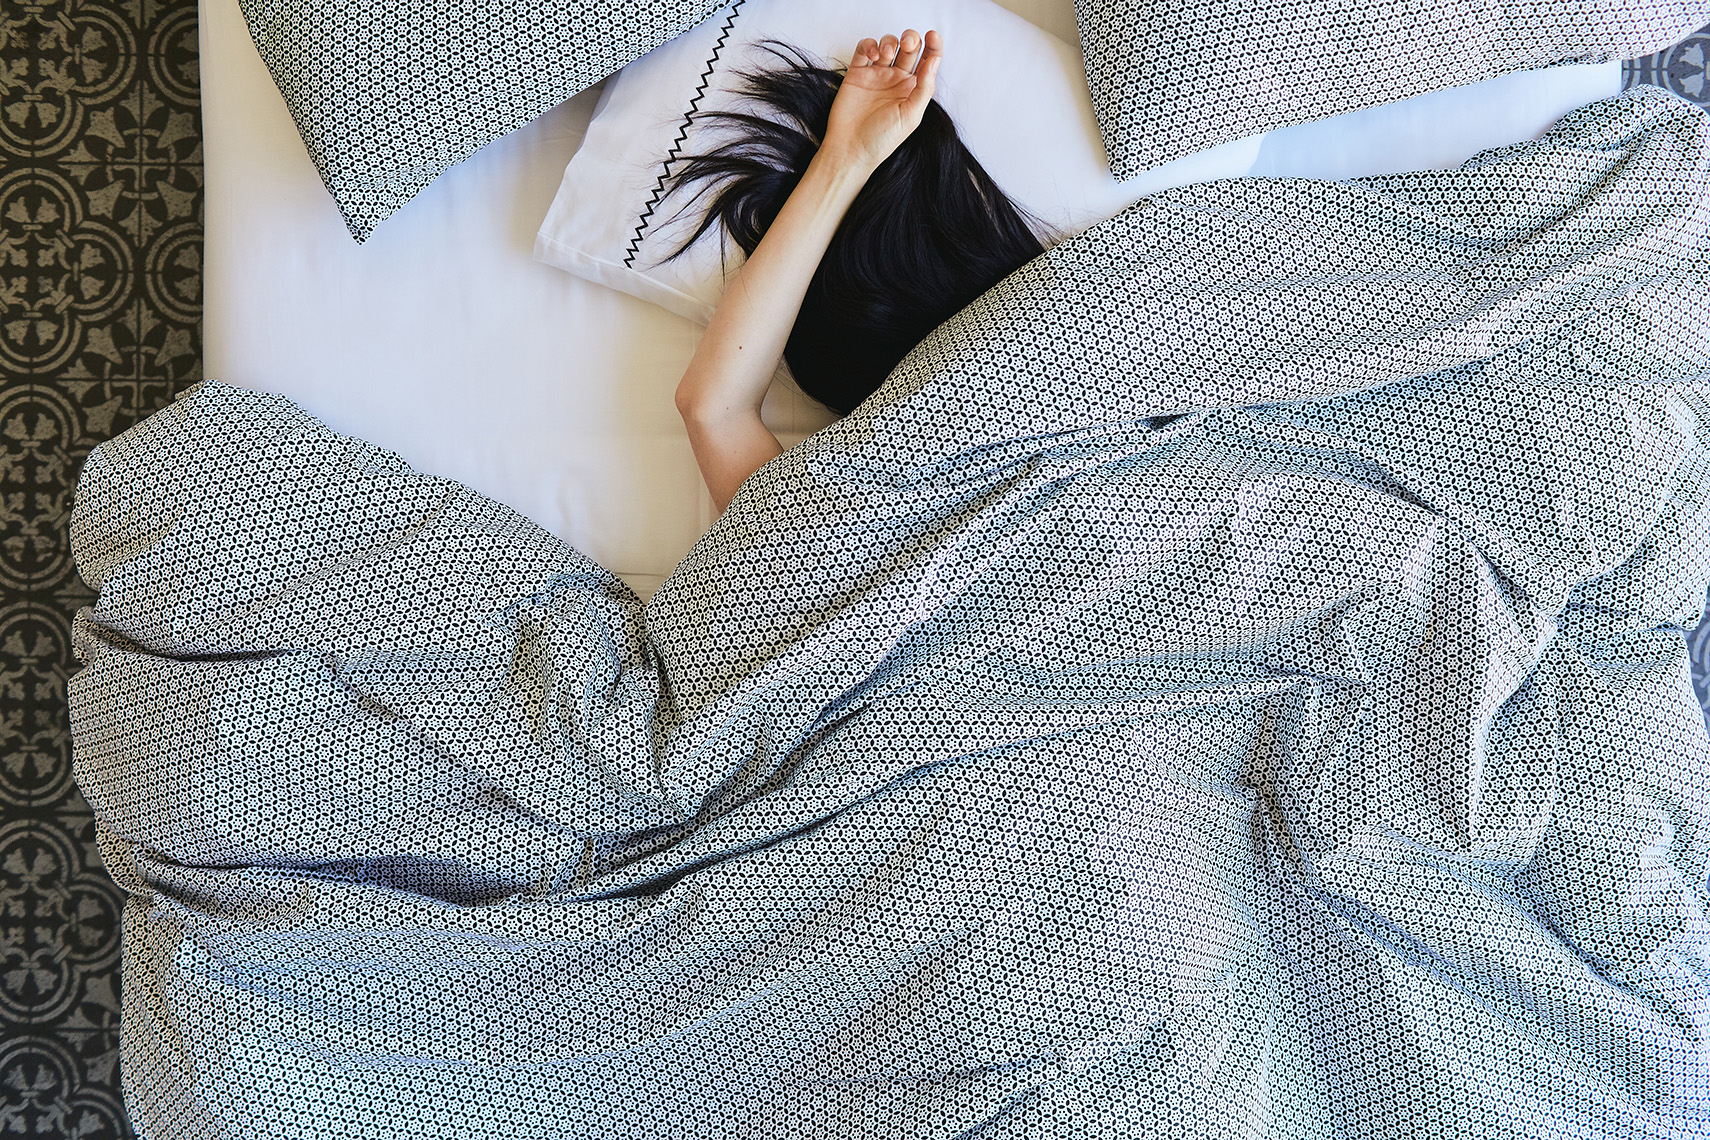 Lifestyle images of bedding by Plover Organic, as photographed by Leah Verwey.